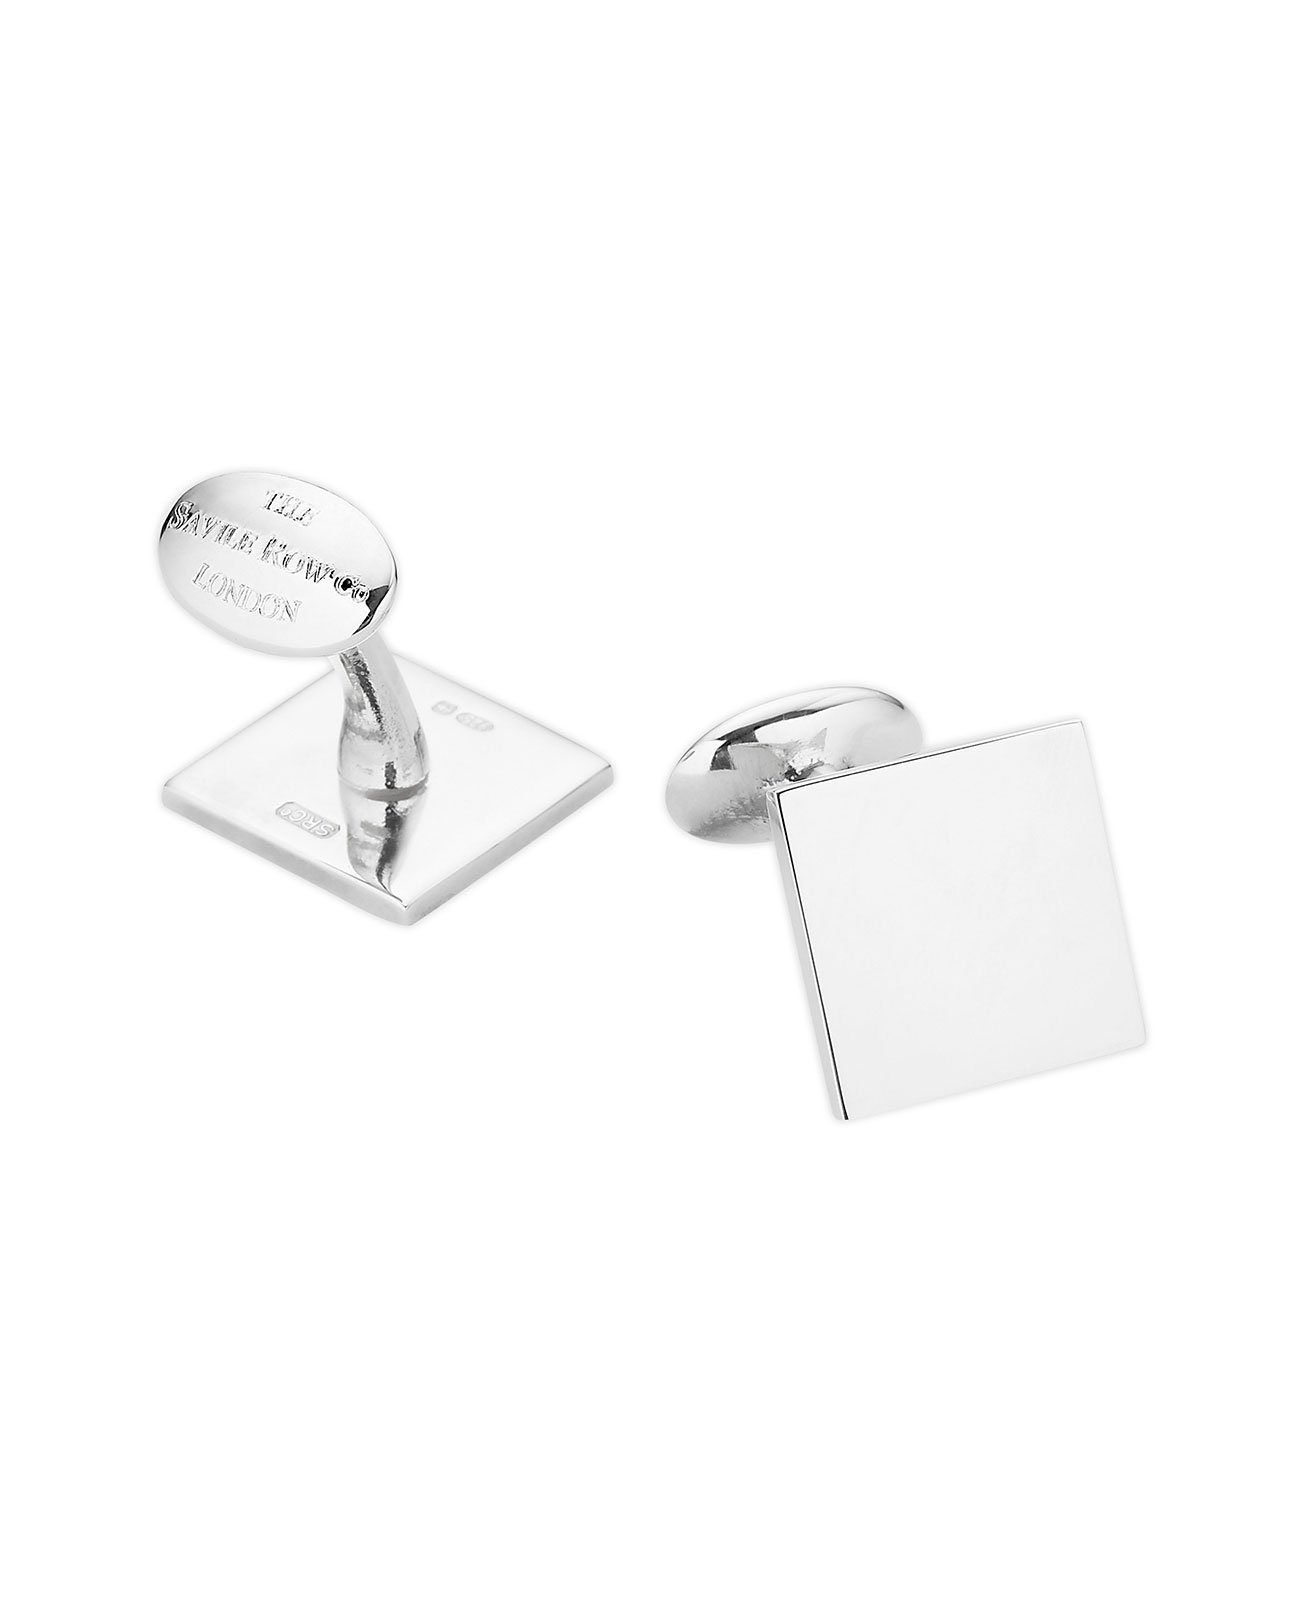 Savile Row Men's Engravable Sterling Silver Square Cufflinks